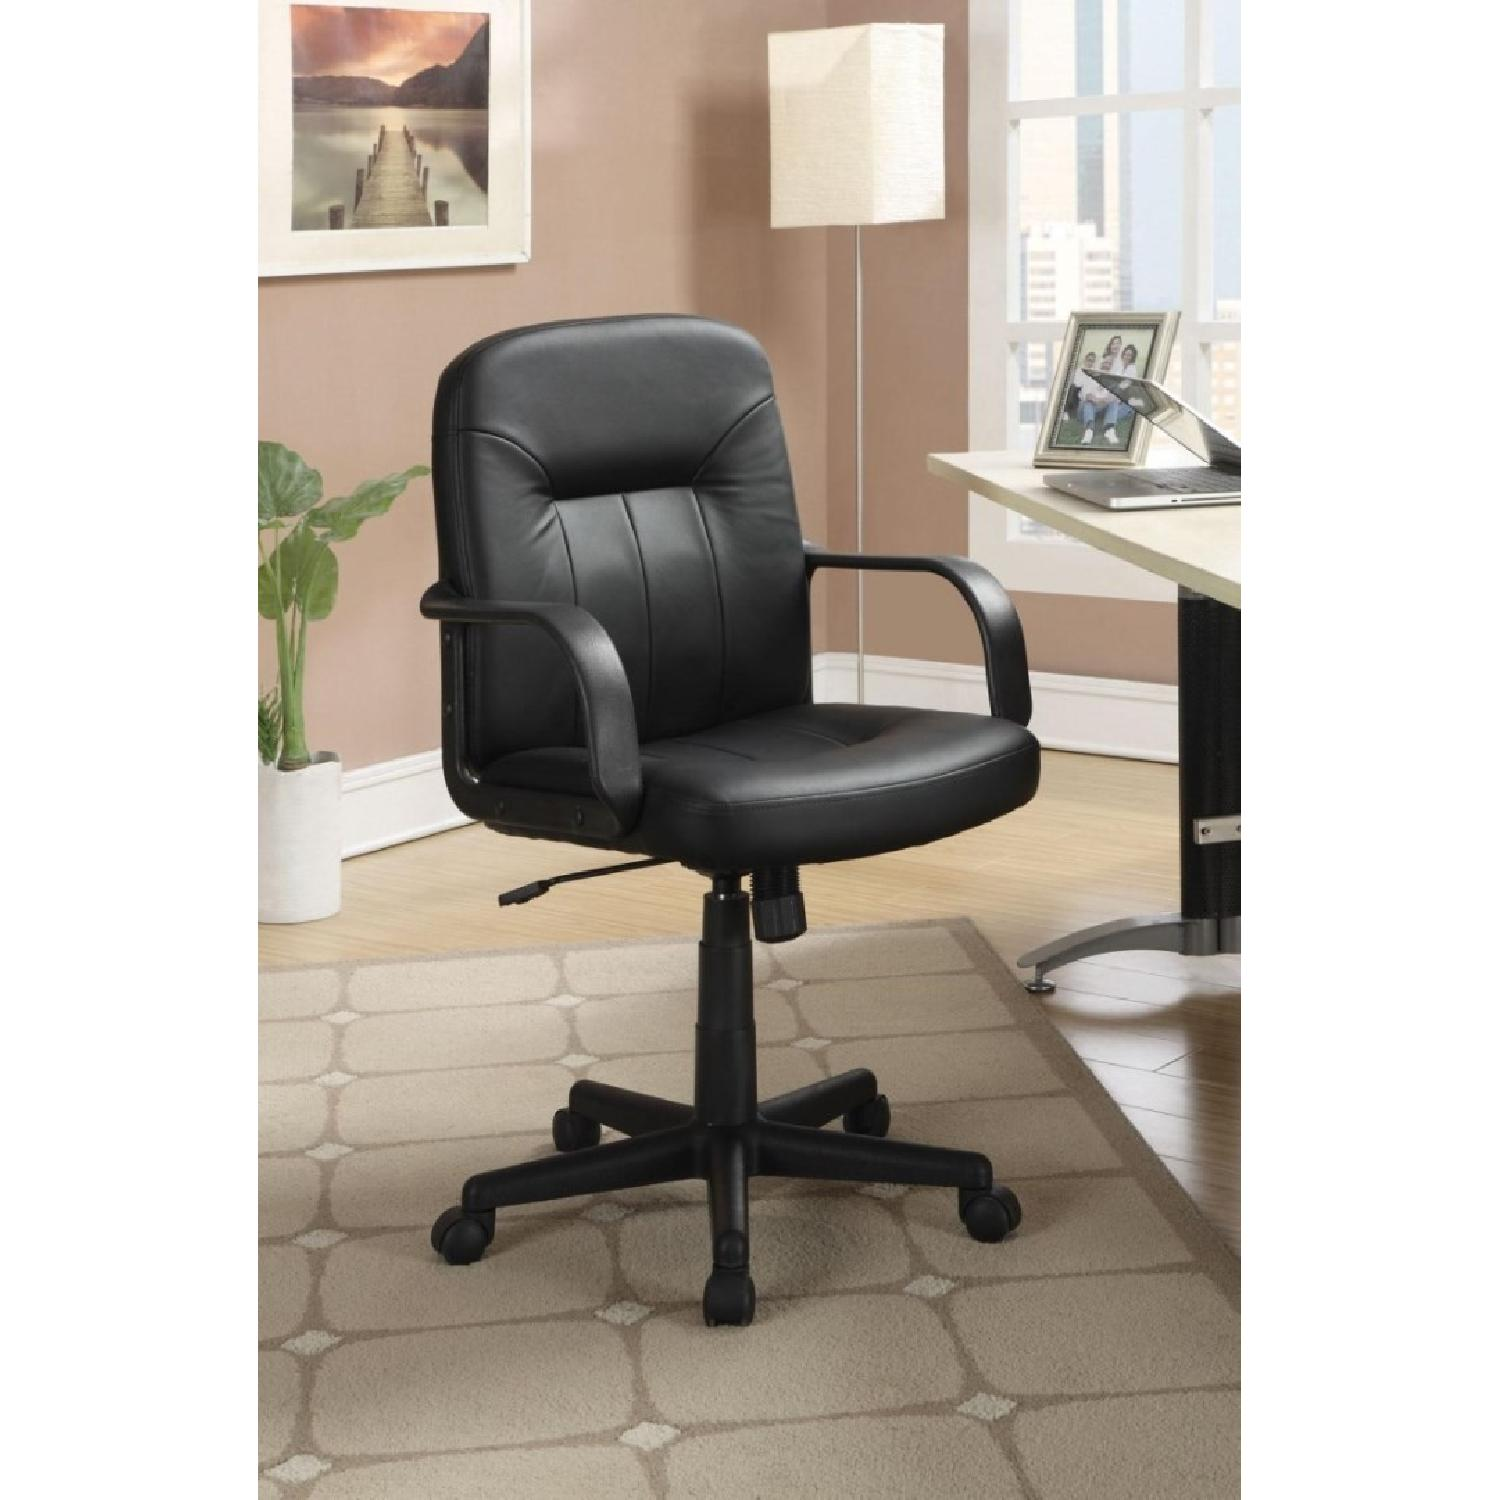 Office Chair in Leather-like Vinyl w/ Arm Rests - image-1